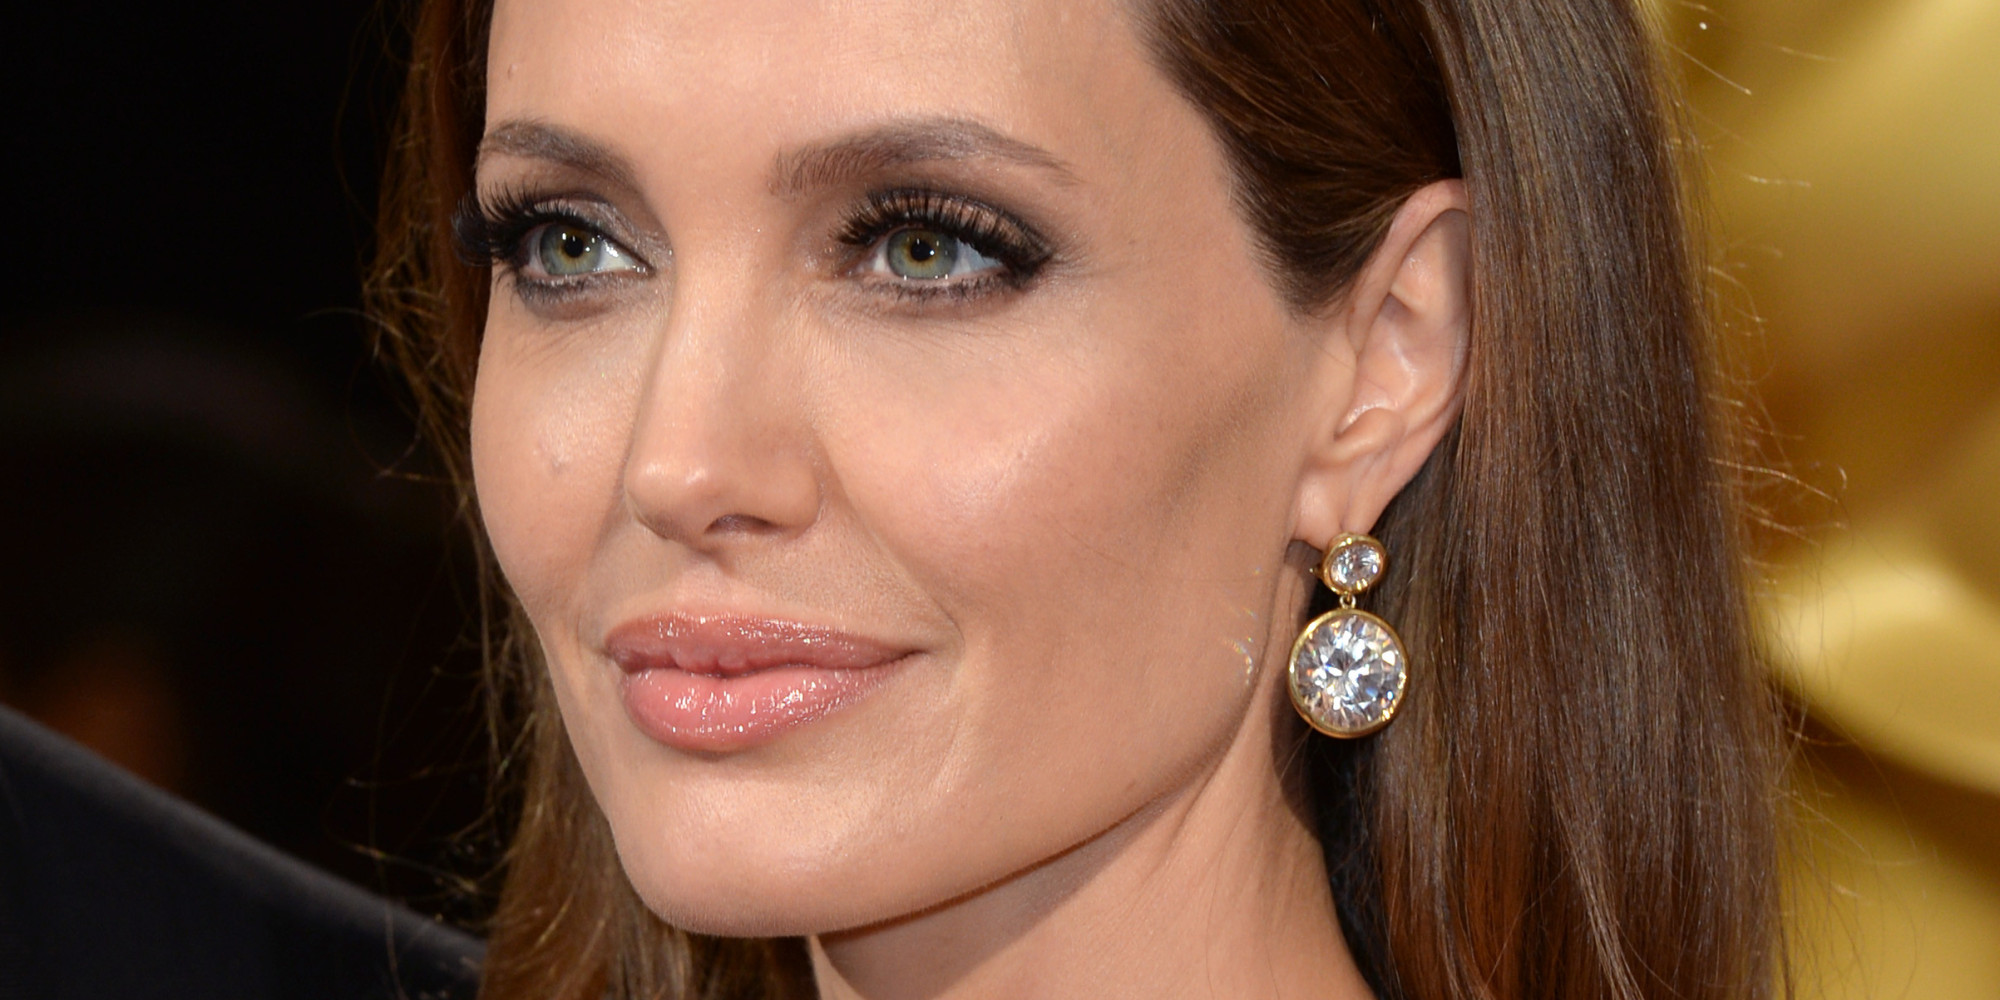 Angelina Jolie: Angelina Jolie Cancer Surgery: Actress To Have Another